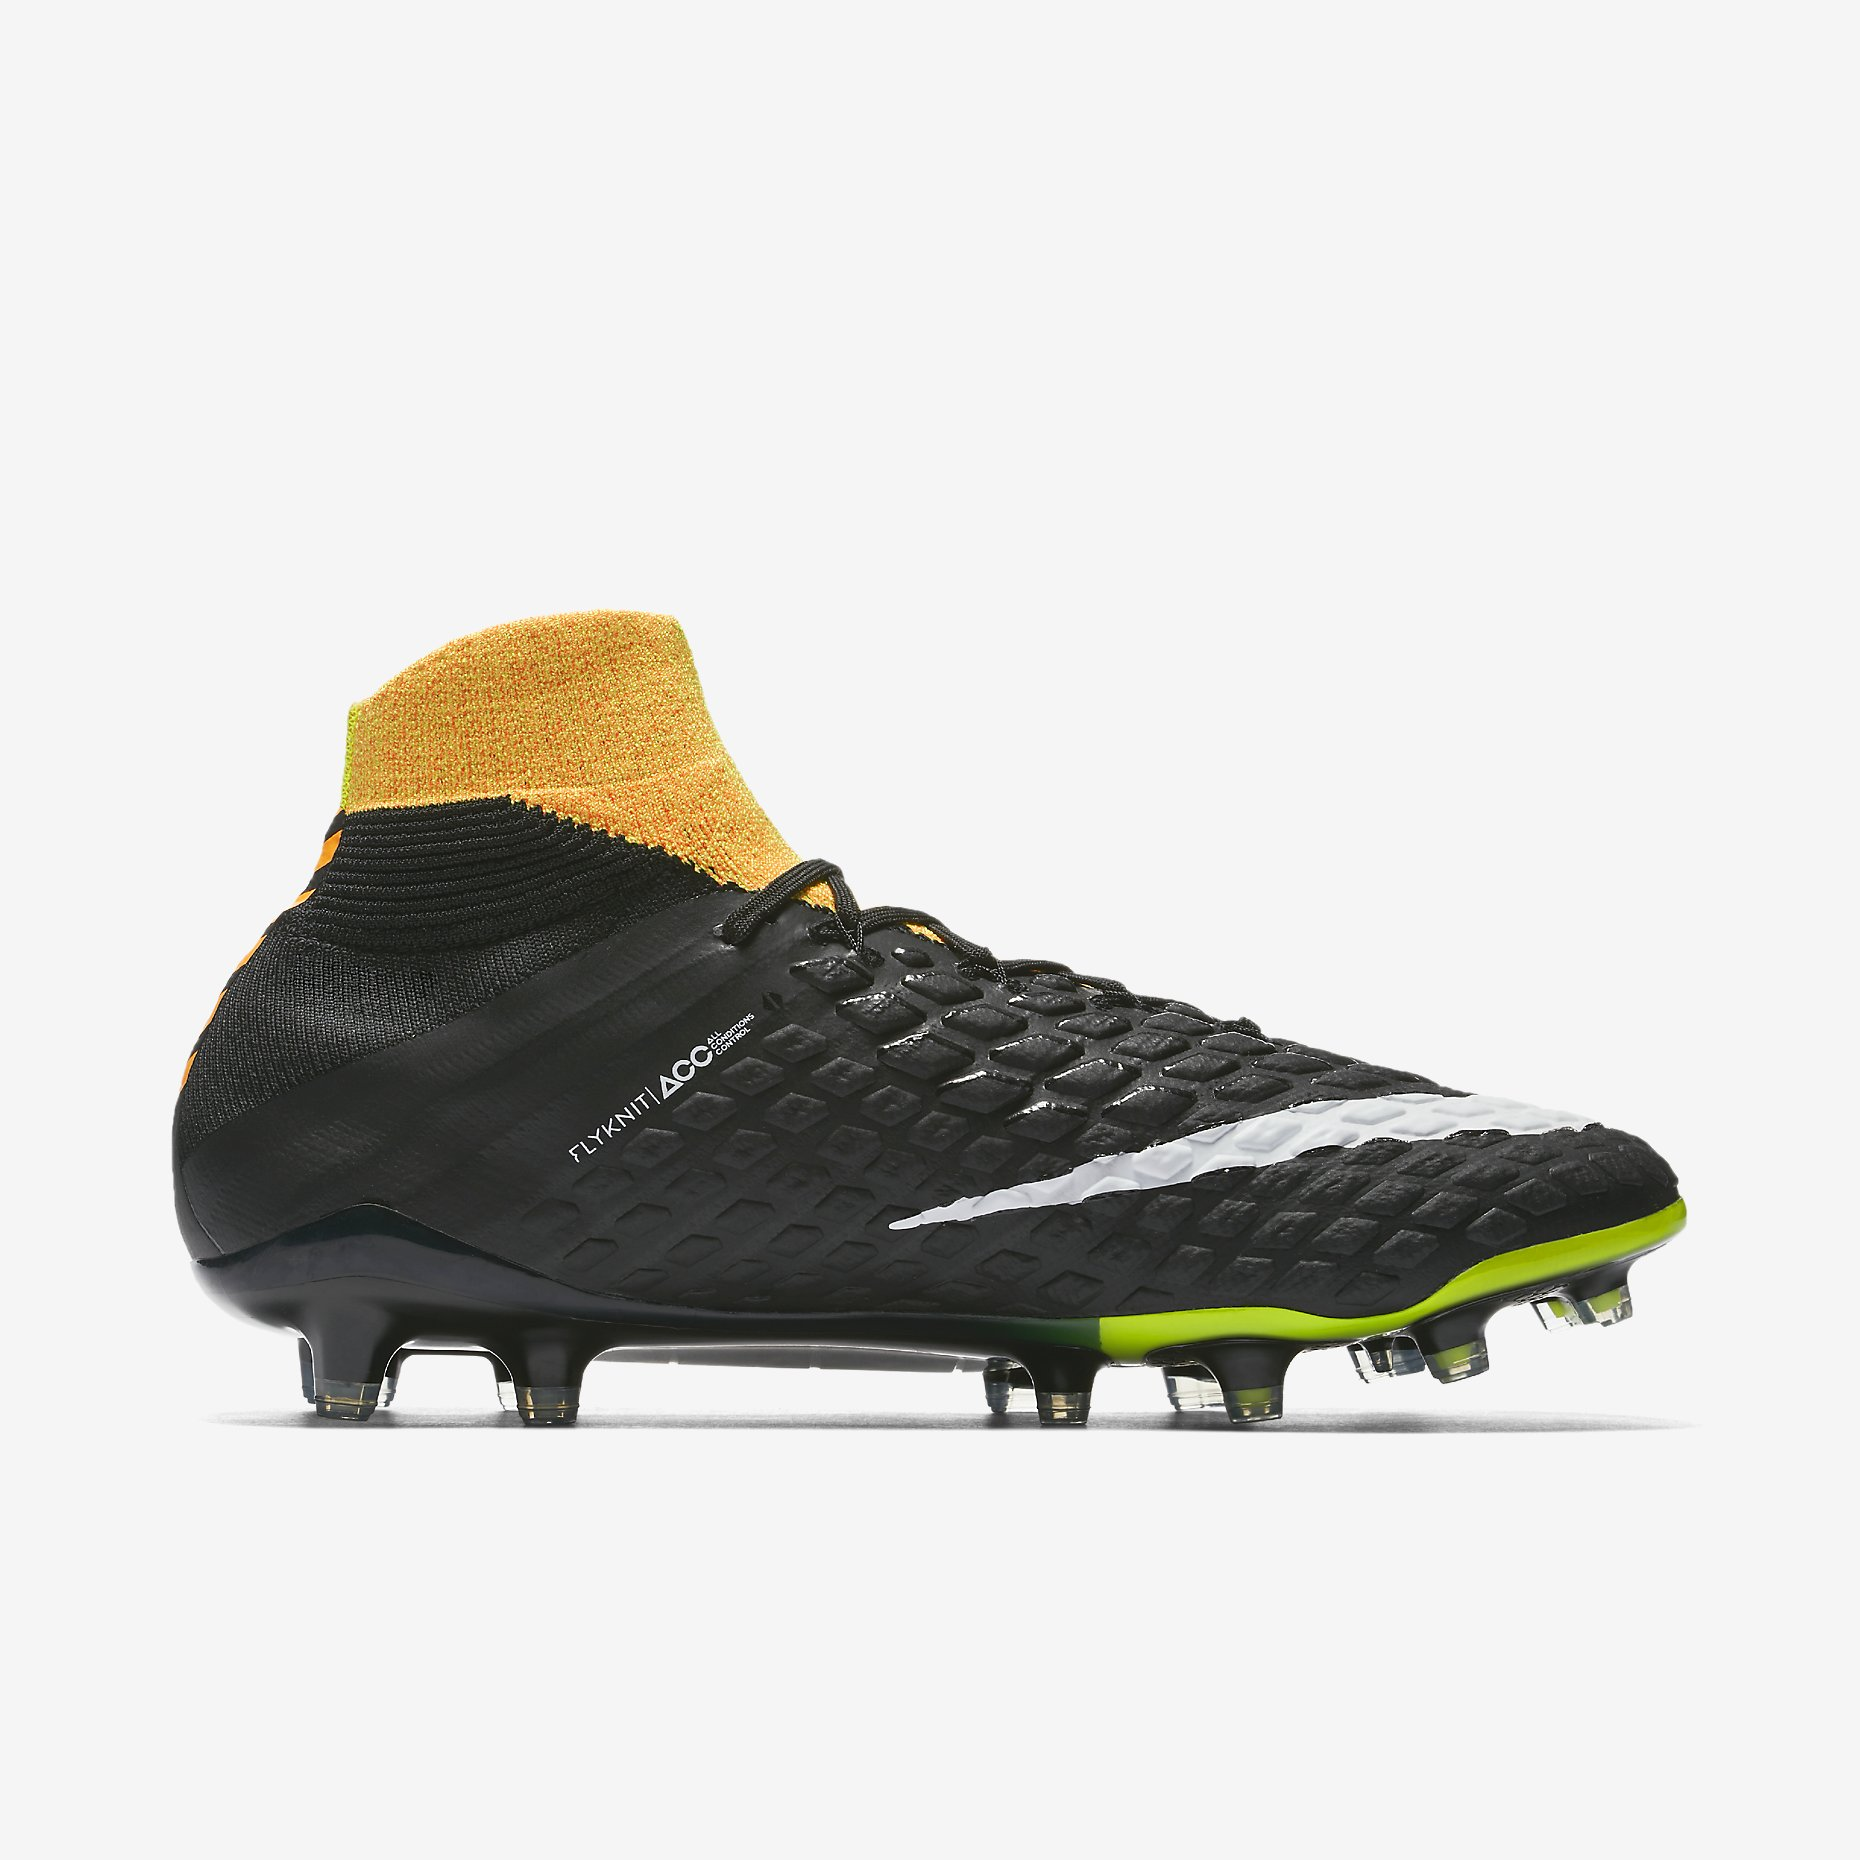 bd827845a93 ... Click to enlarge image  nike hypervenom phantom 3 df fg lock in let loose laser orange black volt white c.jpg  ...